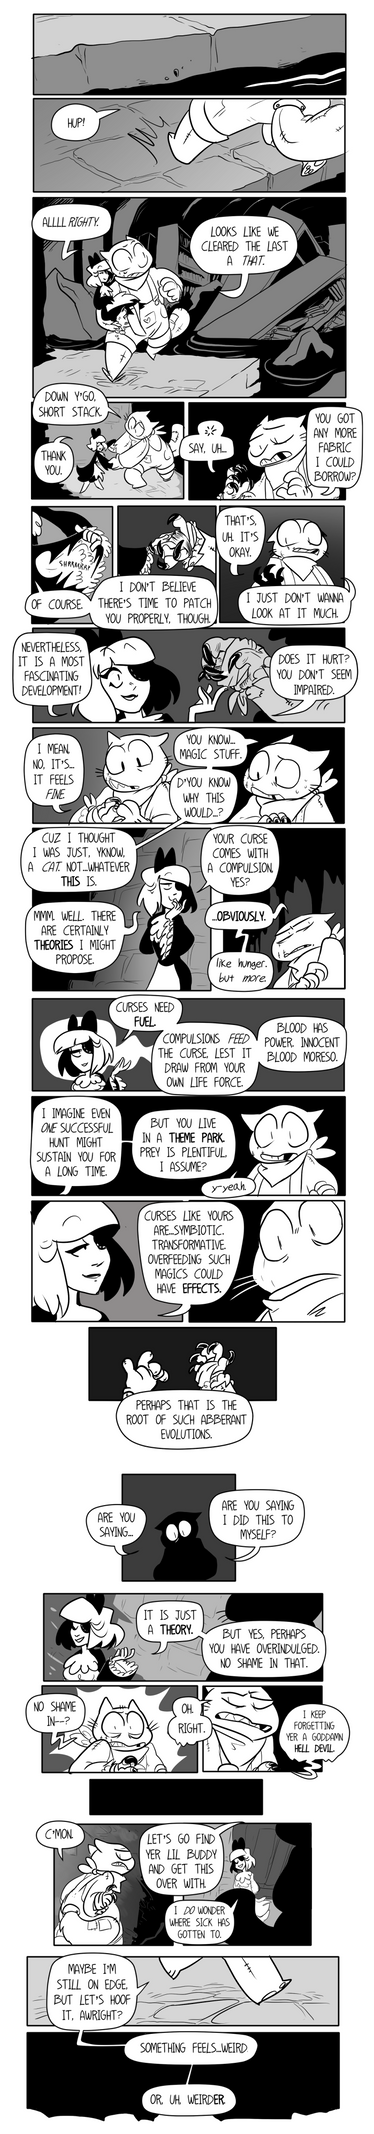 Haunted Library R5 part 1 by flatw00ds